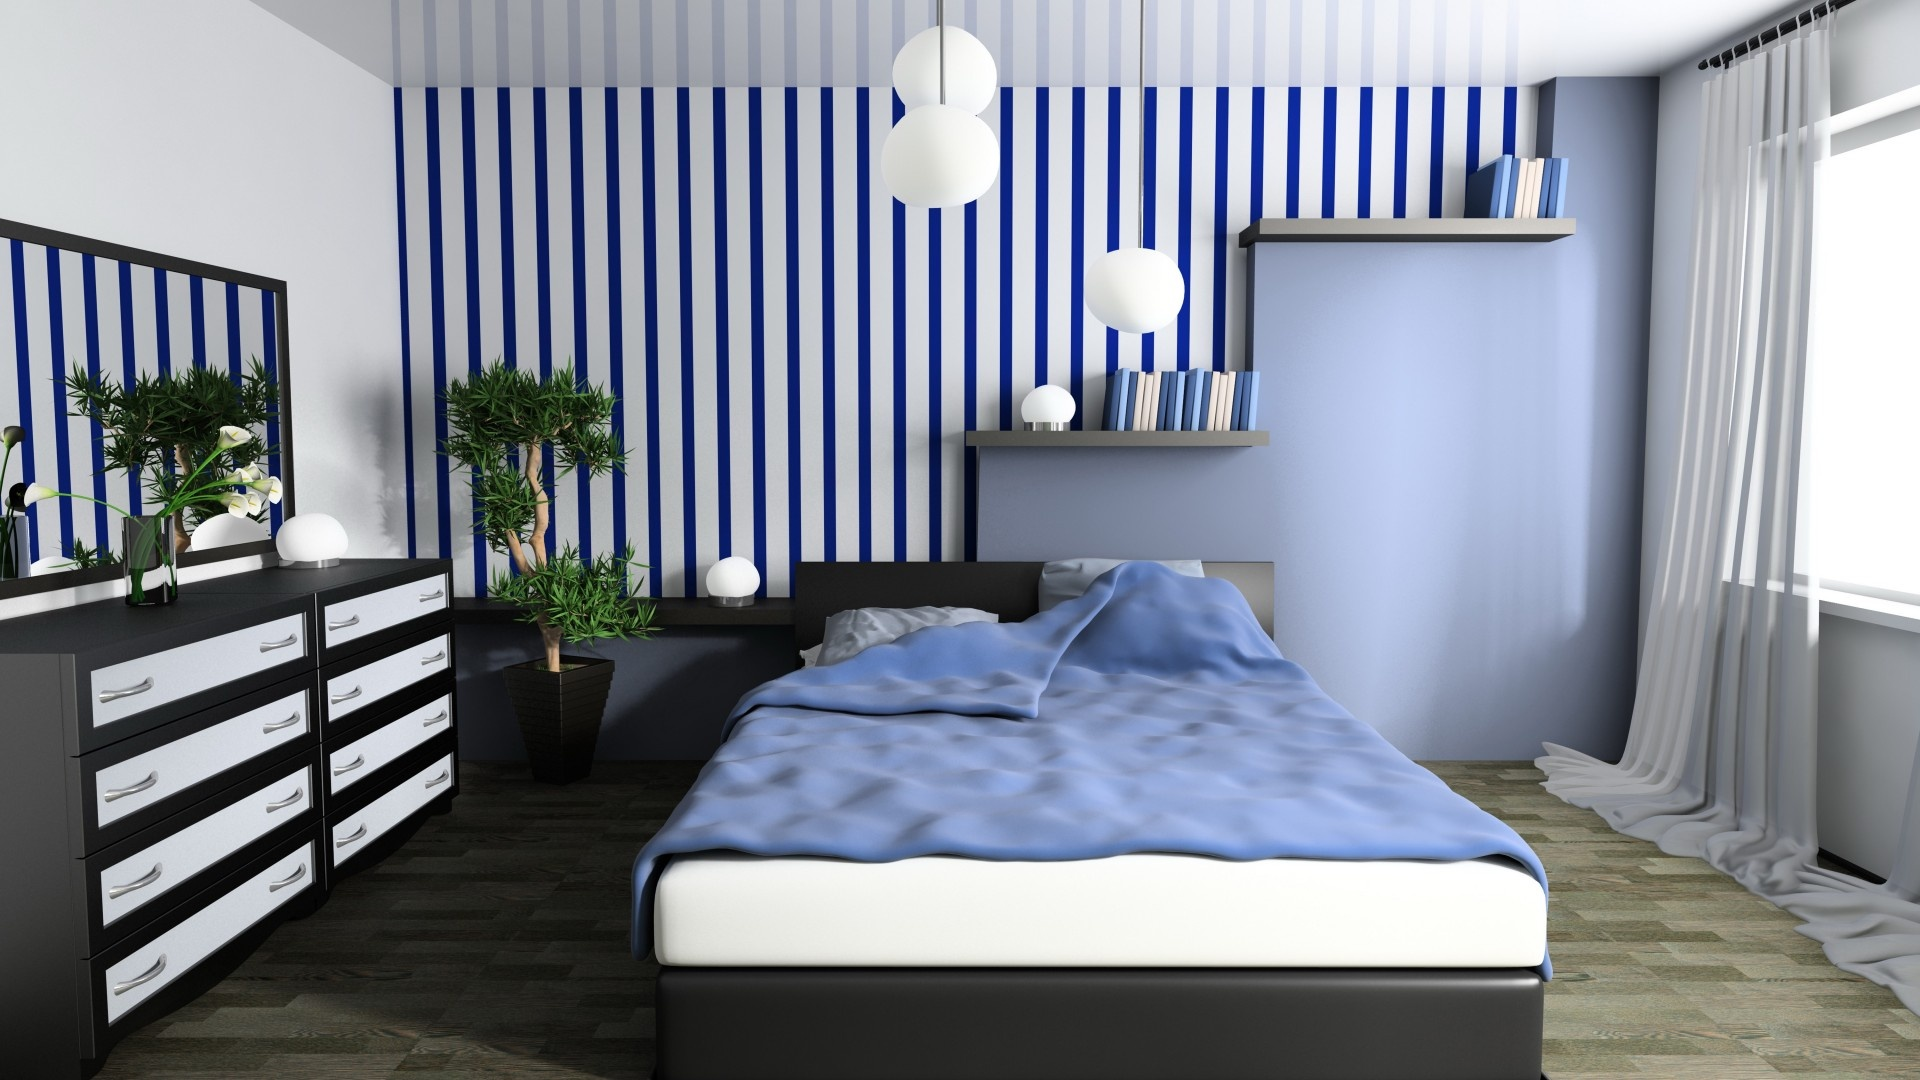 Outstanding Blue Interior Bedroom Designs 1920 x 1080 · 440 kB · jpeg